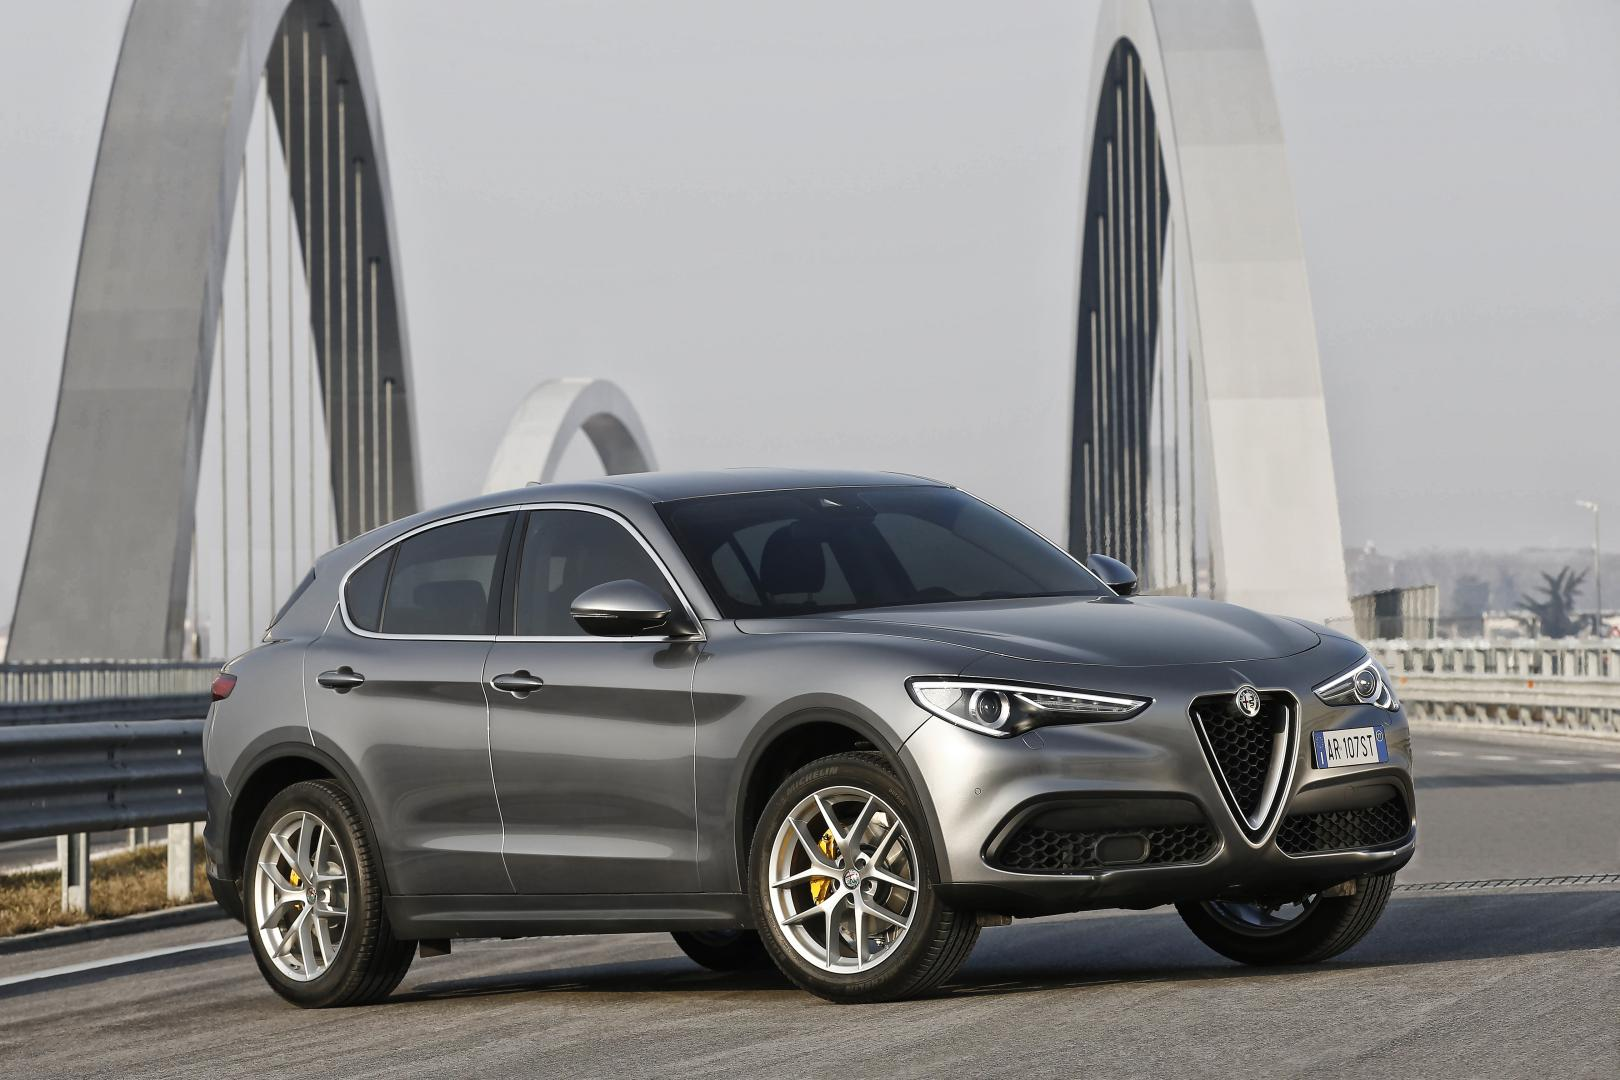 alfa romeo stelvio 2 2 jtd 210 pk 2017 test specificaties topgear. Black Bedroom Furniture Sets. Home Design Ideas